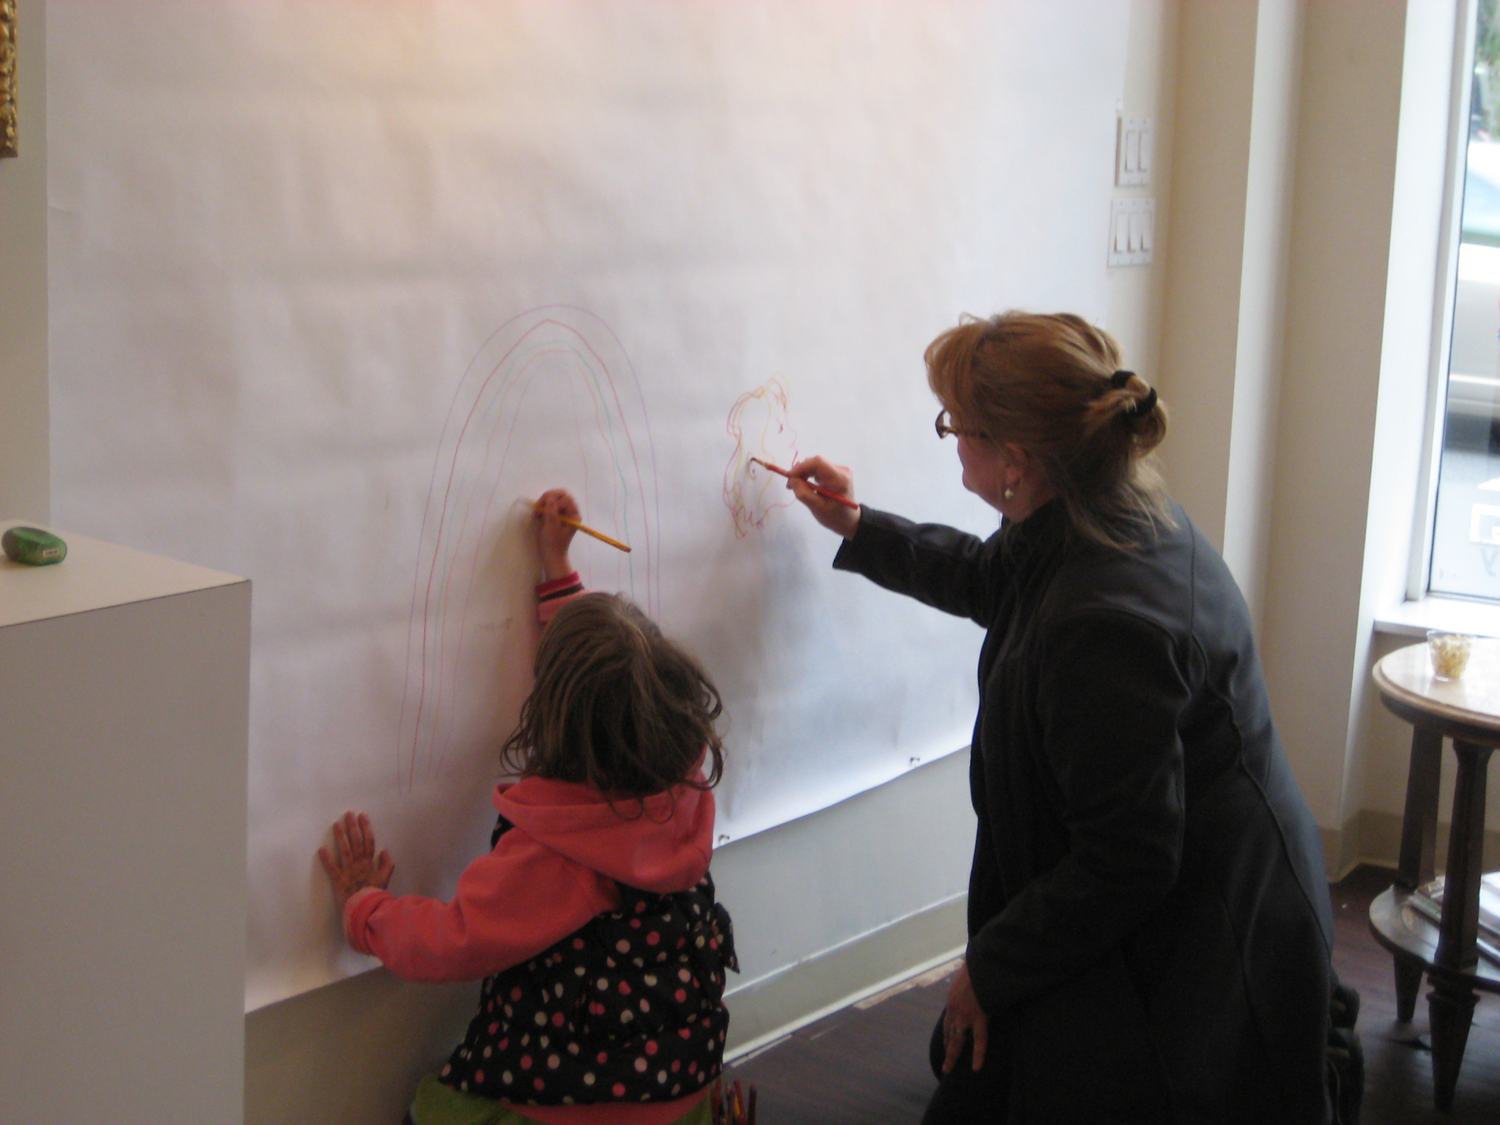 Artist Anne McCaffrey and her daughter start off the Make Art Now wall